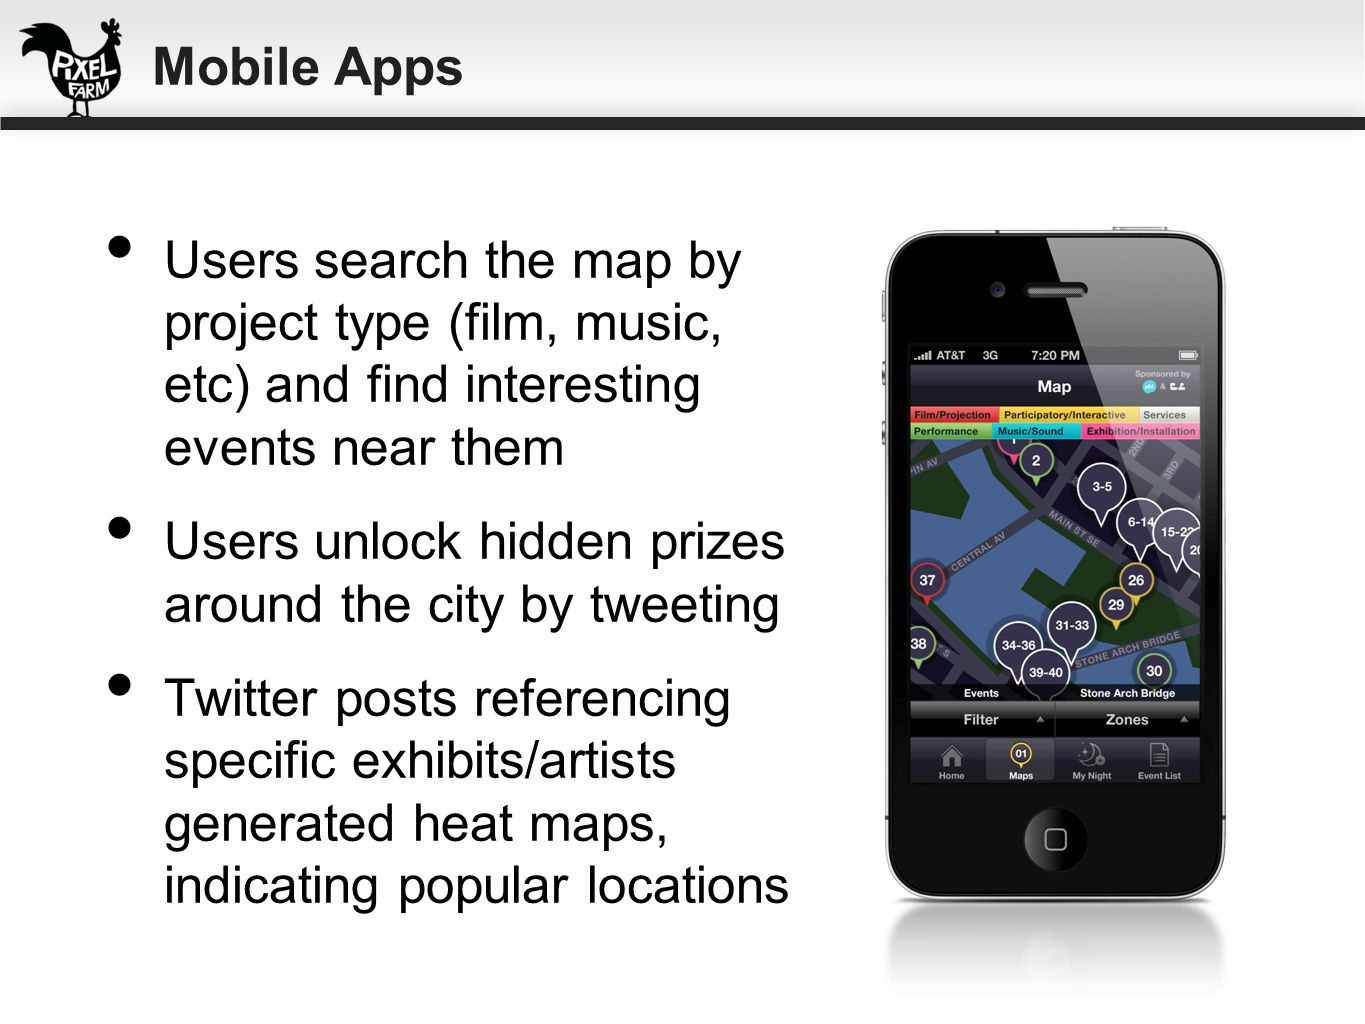 Mobile Apps Users search the map by project type (film, music, etc) and find interesting events near them.